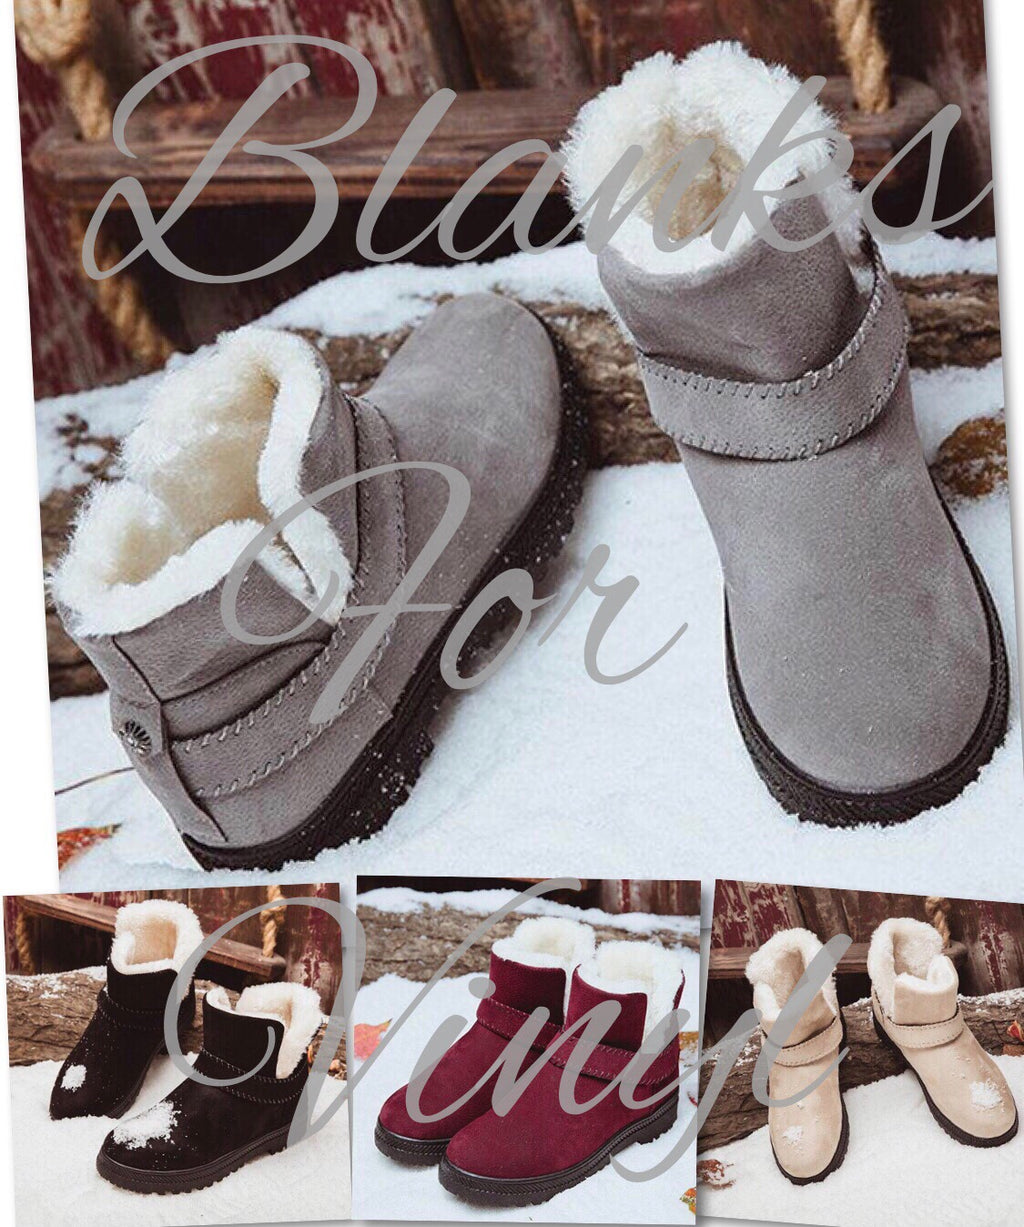 SNOW ANGEL WINTER BOOTIES (3)